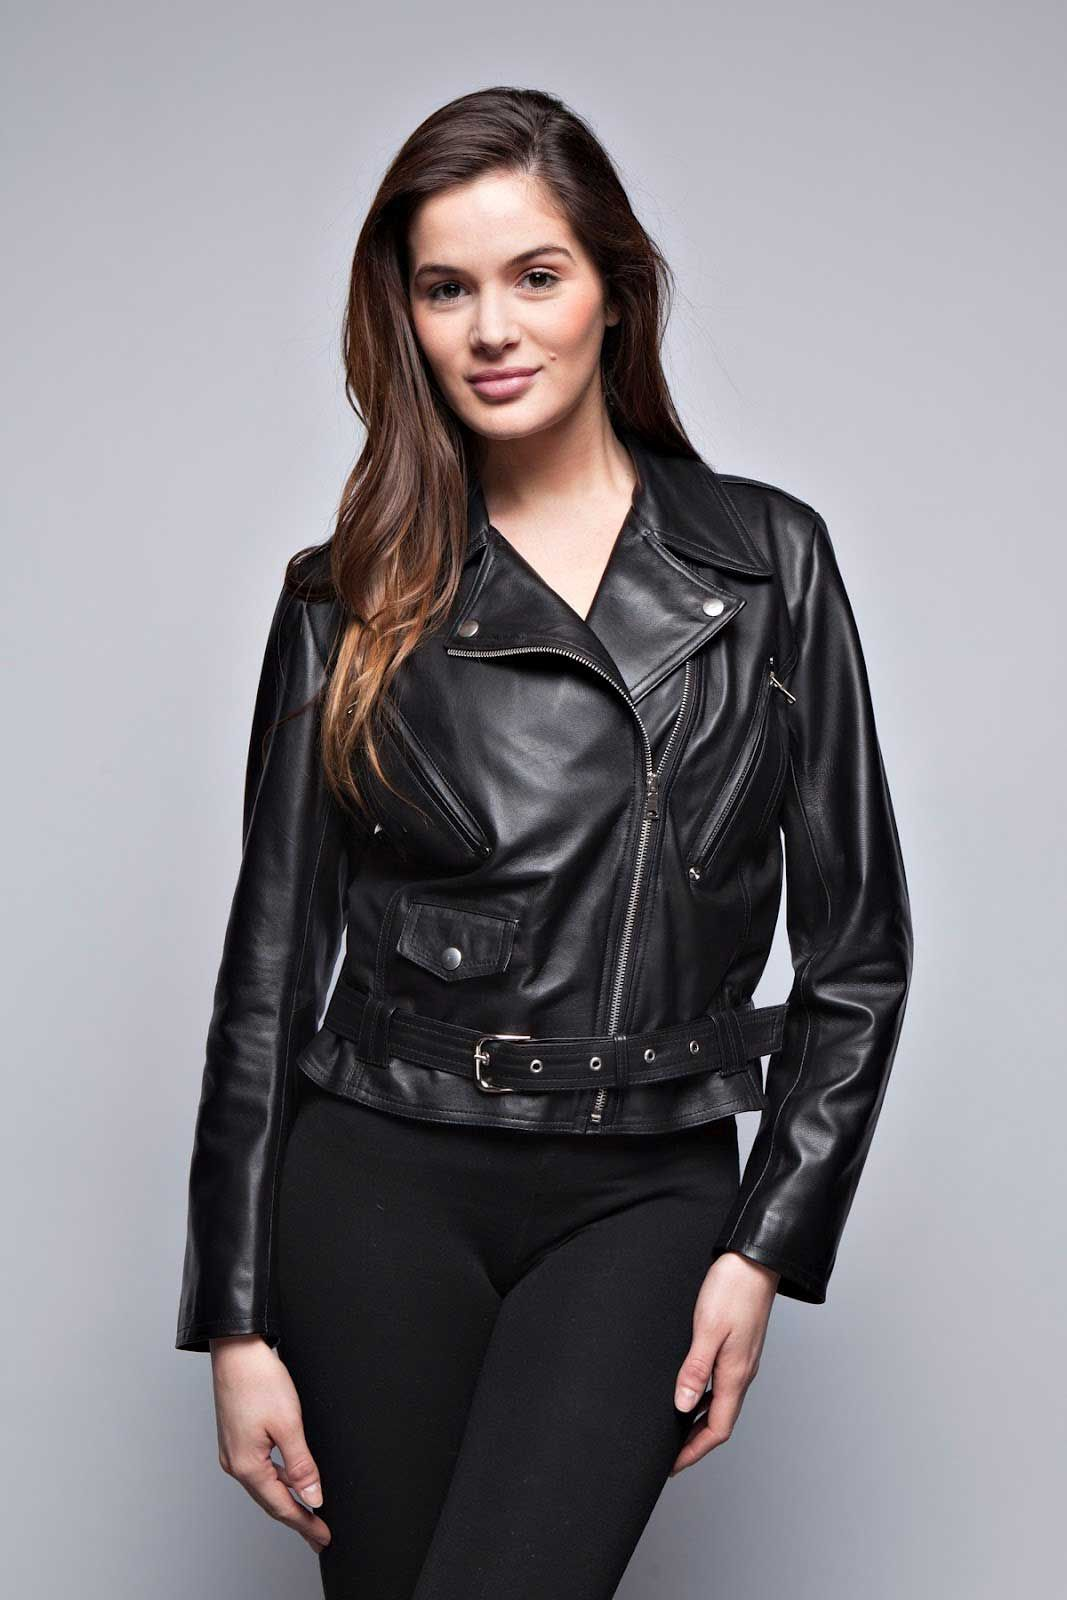 girls leather jackets - Google Search | Leather fashion ...